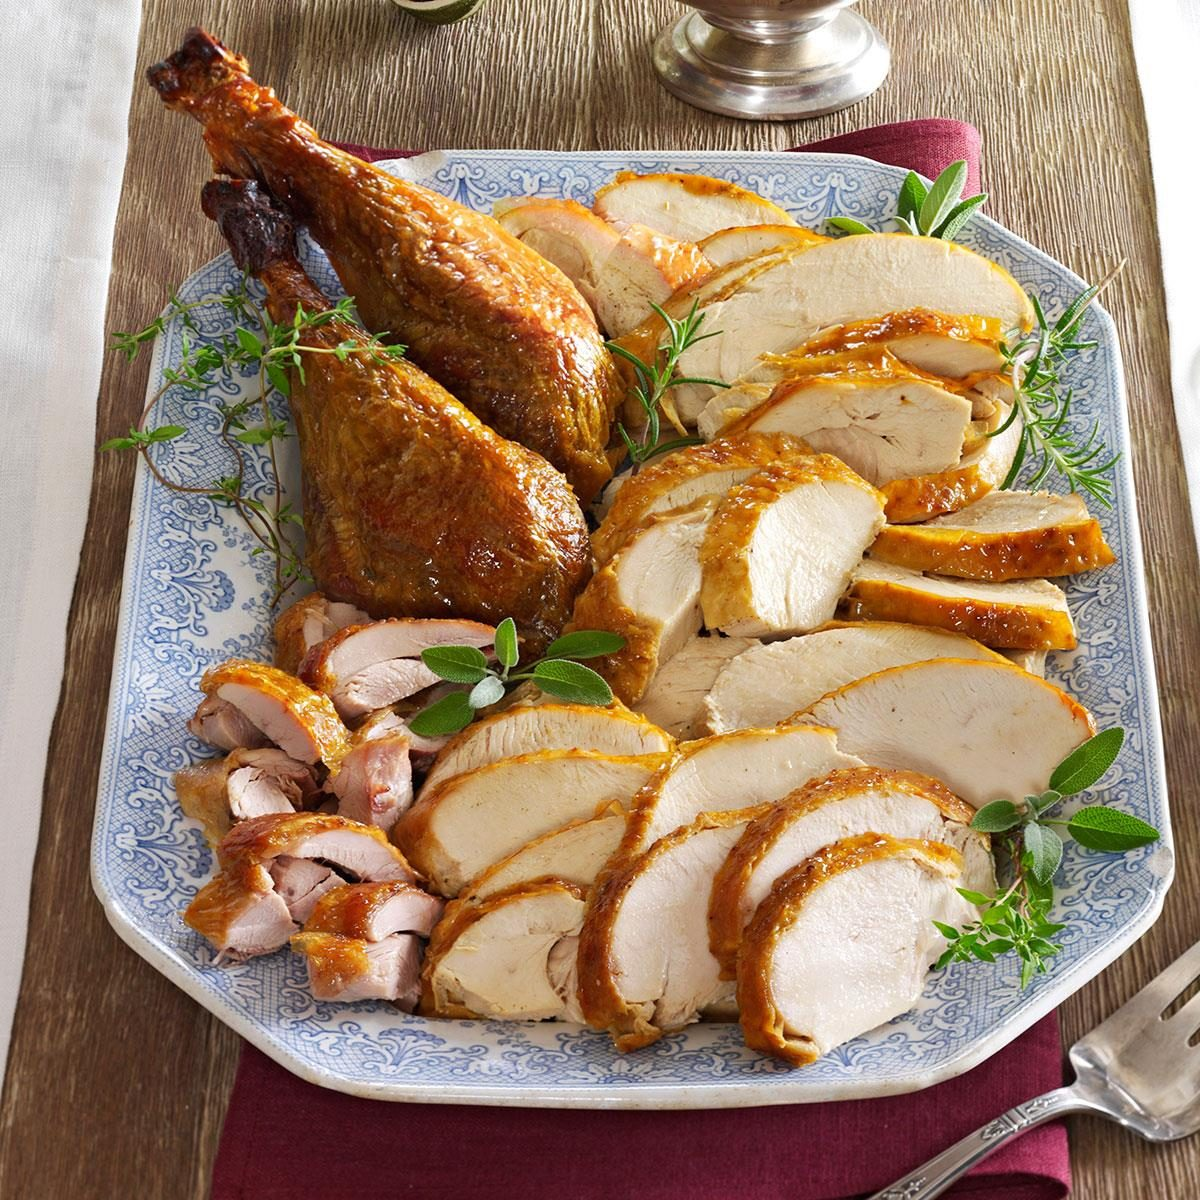 Make Ahead Turkey And Gravy Exps132859 Th132104c06 27 3b Rms 1